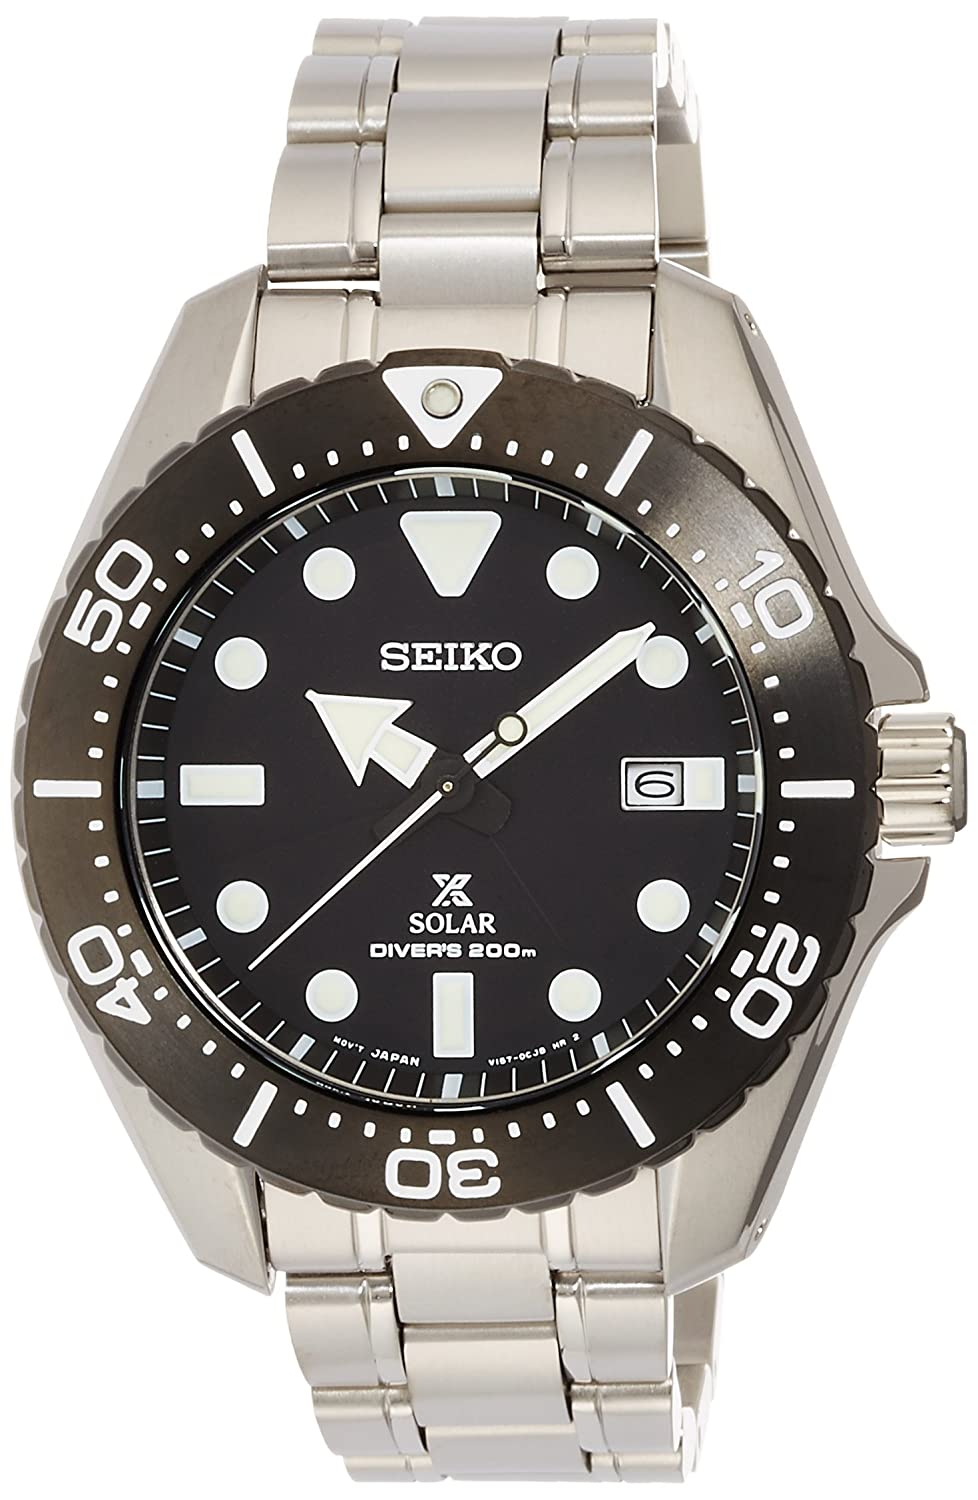 Amazon.com: SEIKO PROSPEX solar Divers 20BAR SBDJ013 Mens Watches: Watches